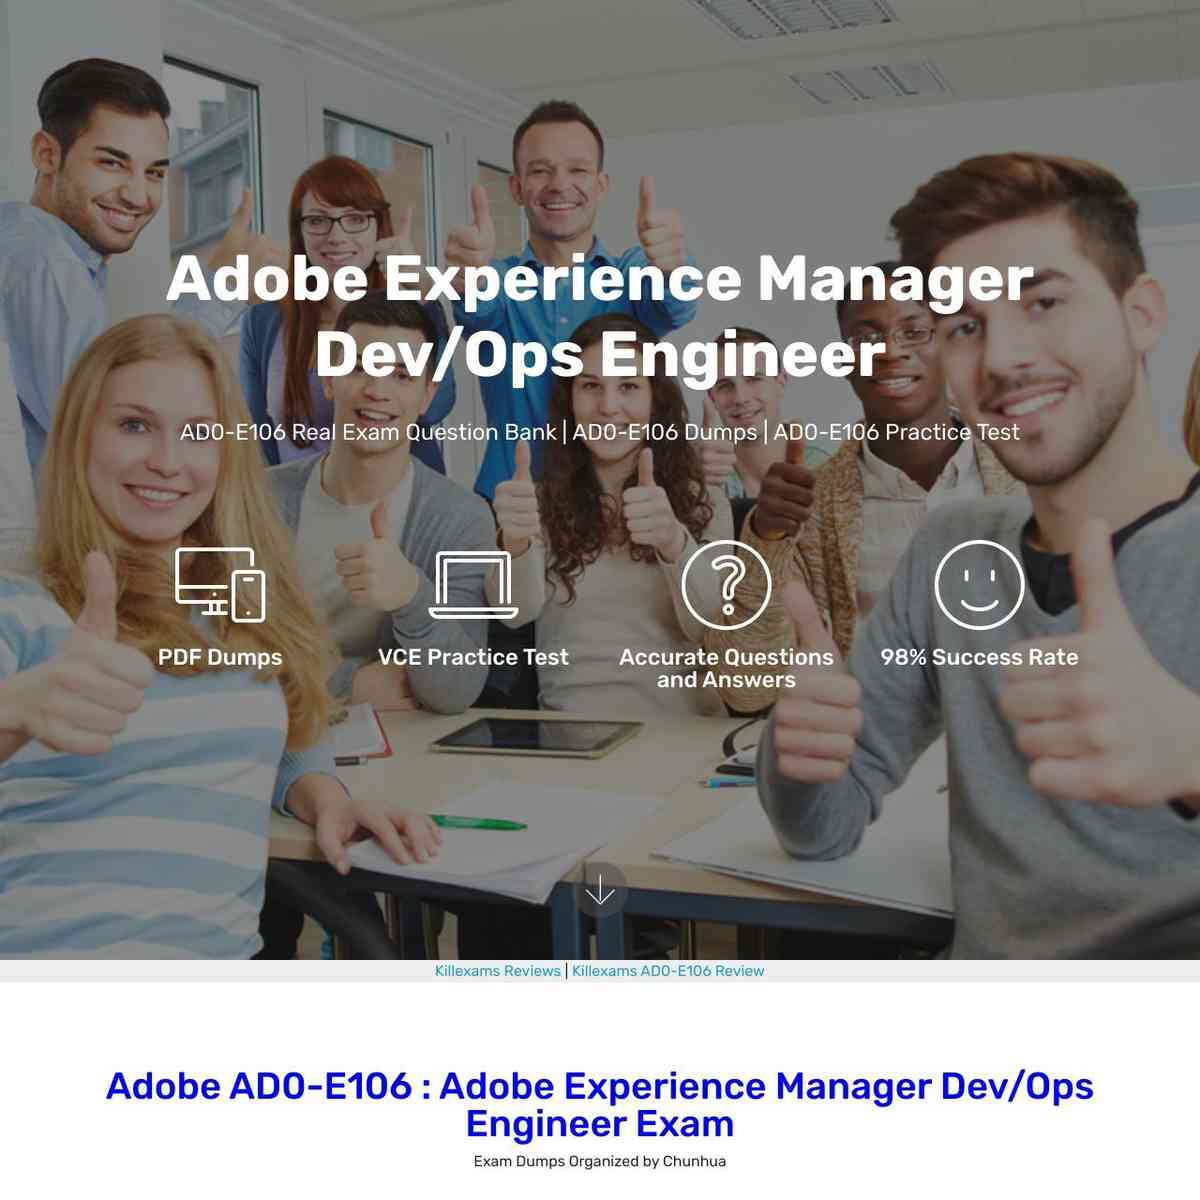 AD0-E106 real questions are totally changed by Adobe